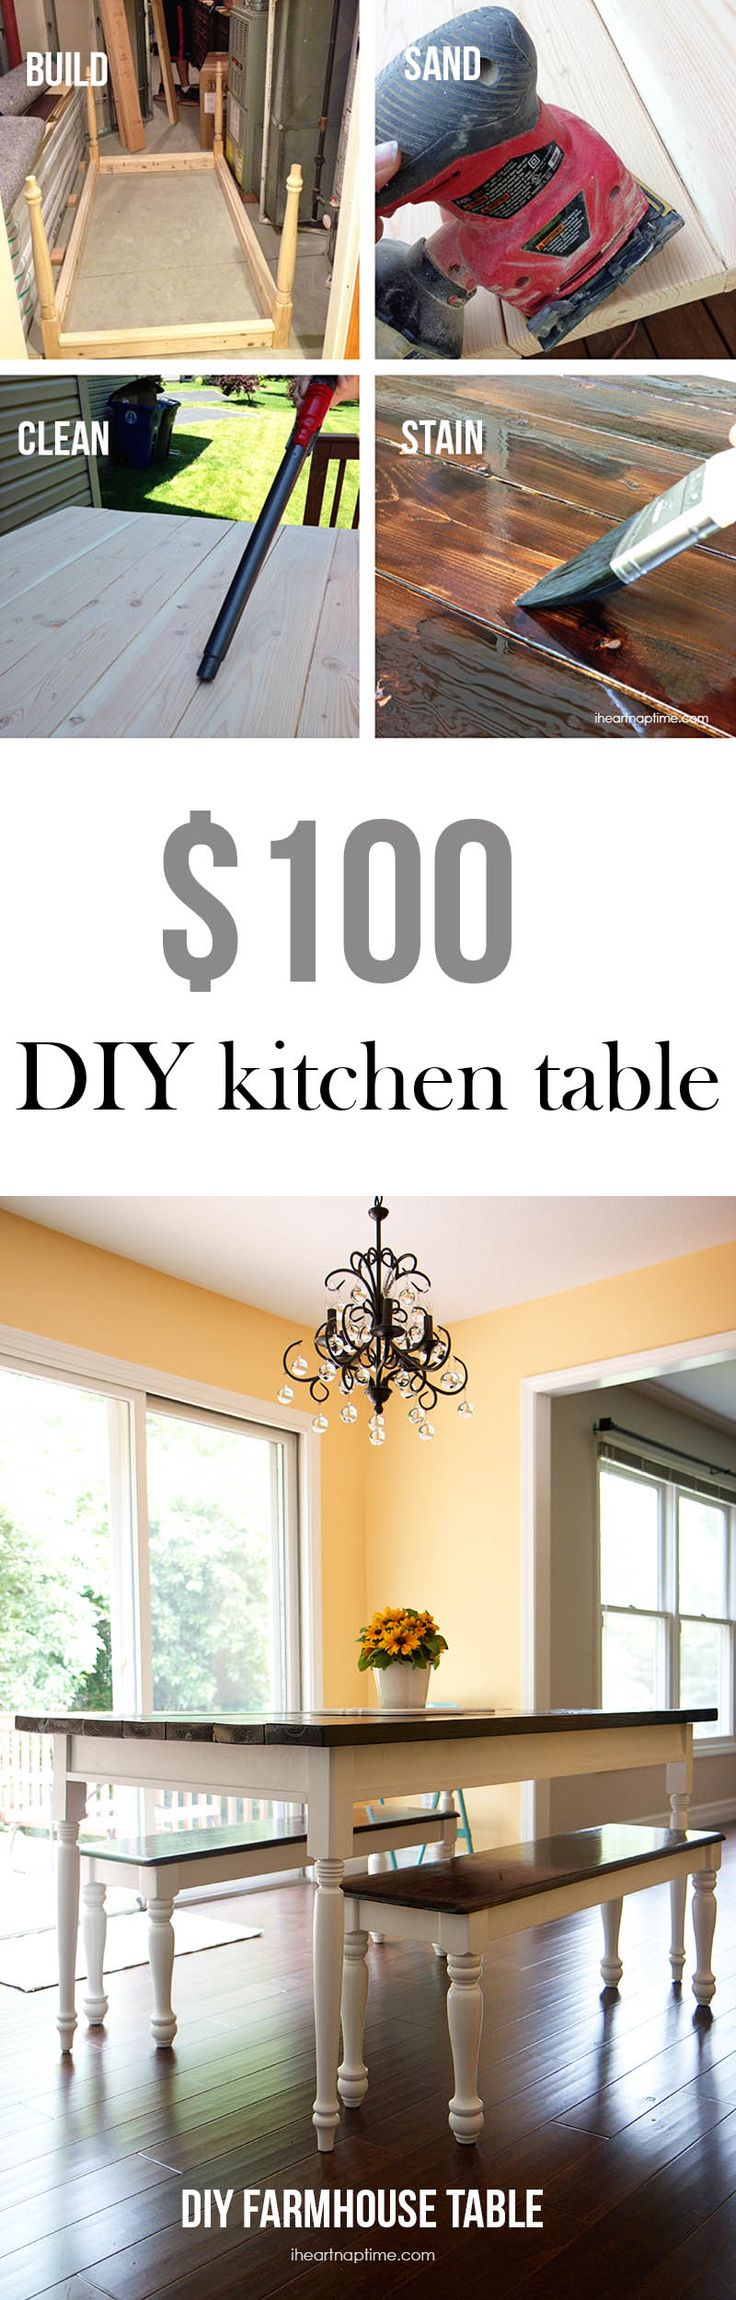 Diy farmhouse table on for less than 100 for 100 kitchen table